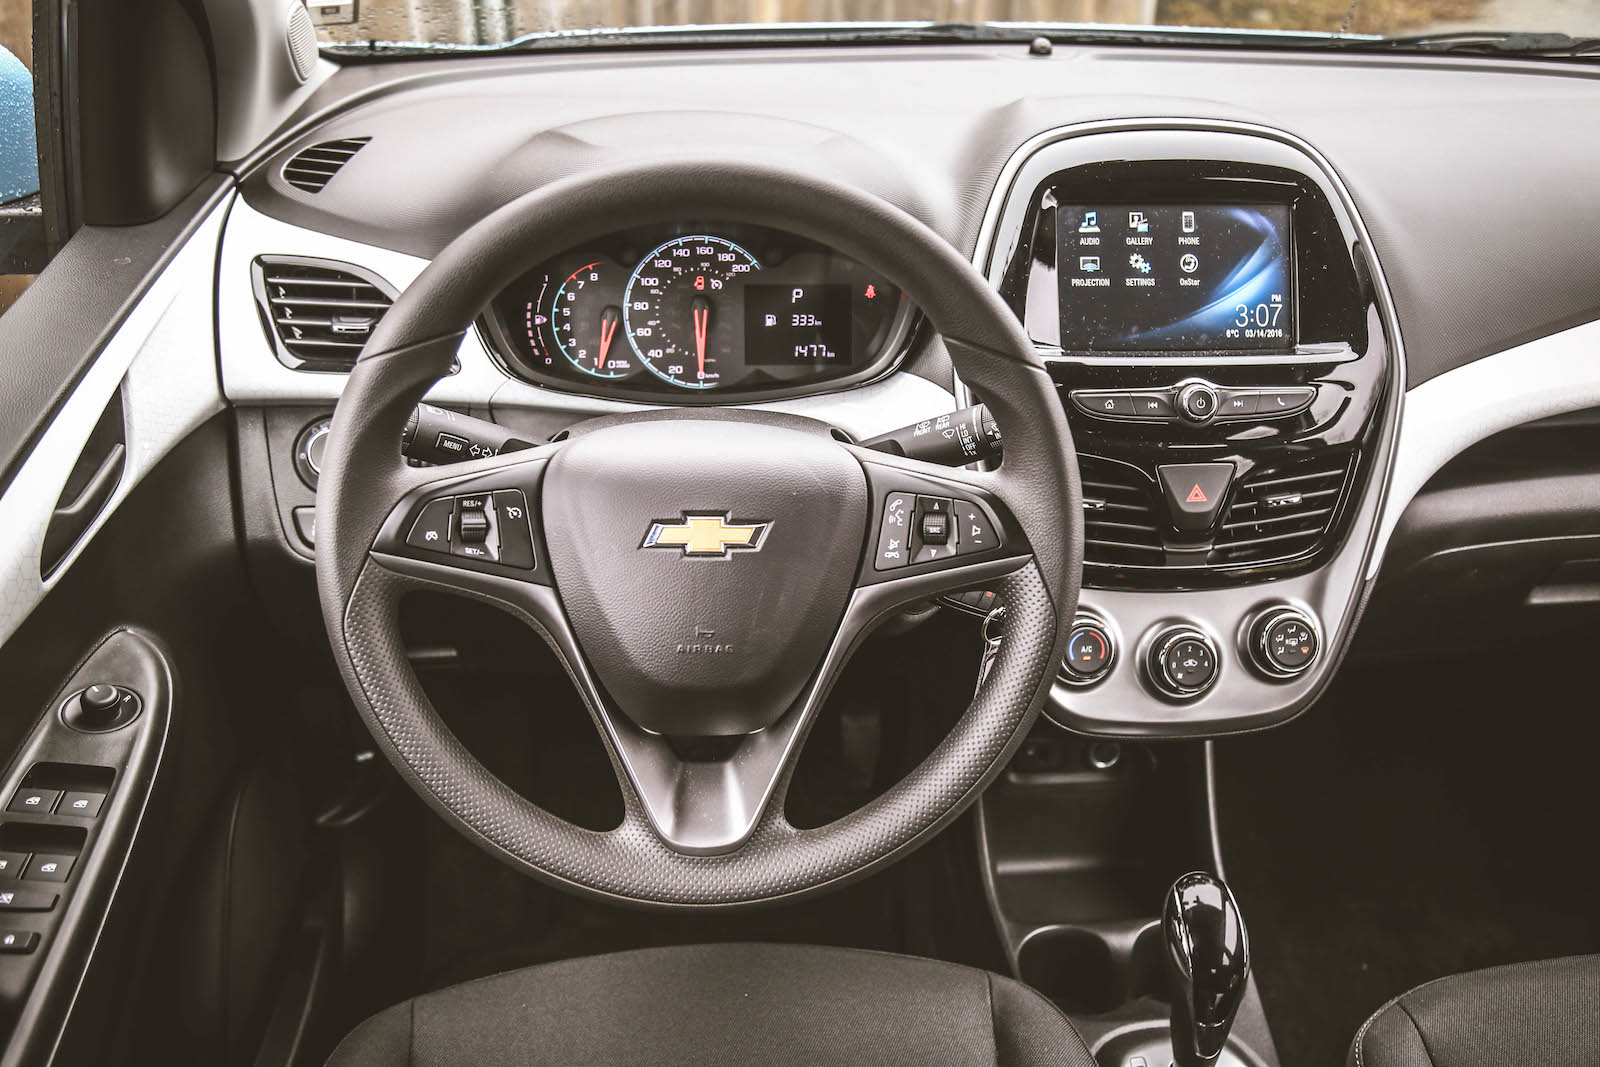 2016 chevrolet spark interior 2016 spark canadian auto review. Black Bedroom Furniture Sets. Home Design Ideas